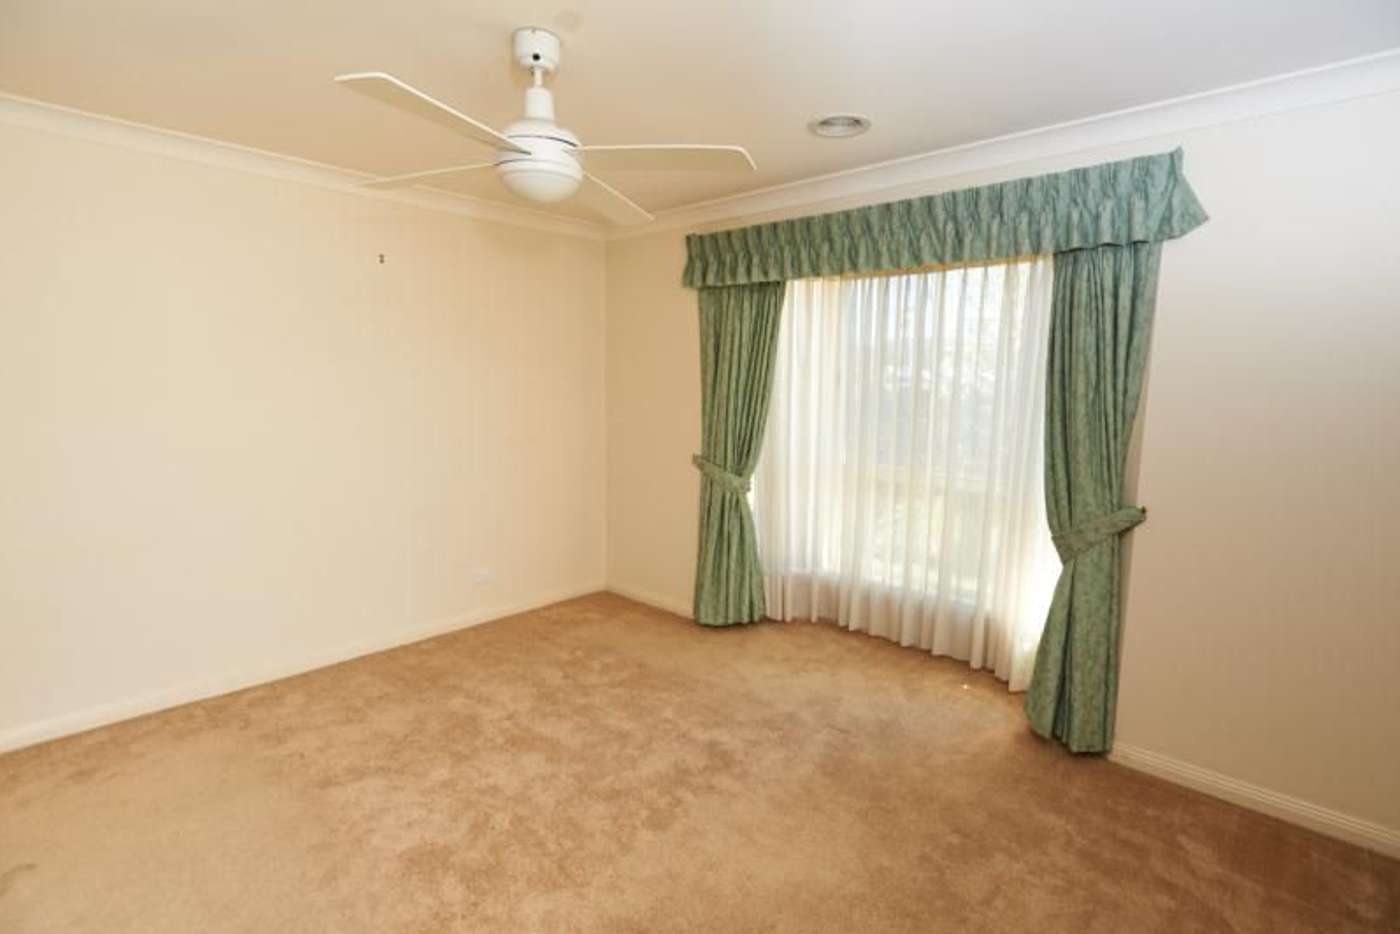 Seventh view of Homely house listing, 75 Pinaroo Drive, Wagga Wagga NSW 2650